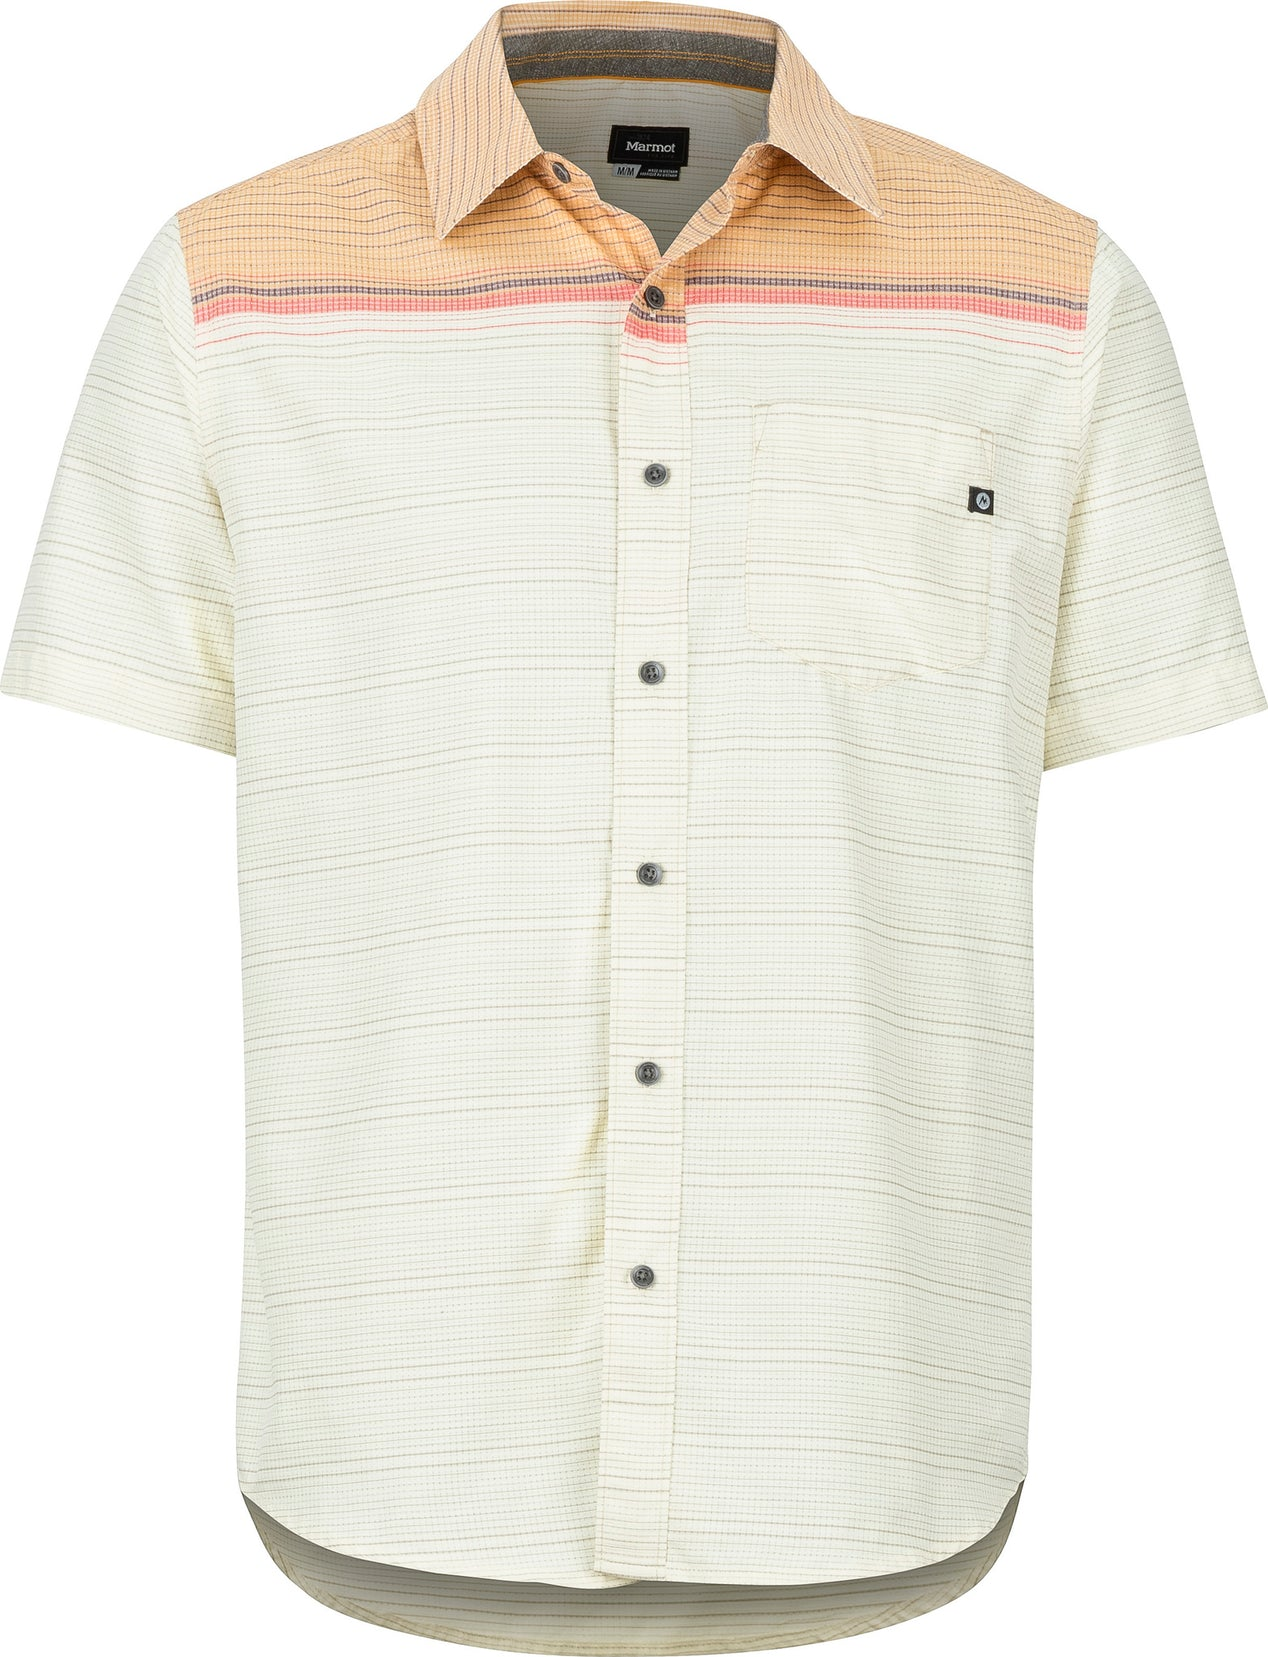 Chemise à manches courtes Syrocco Homme